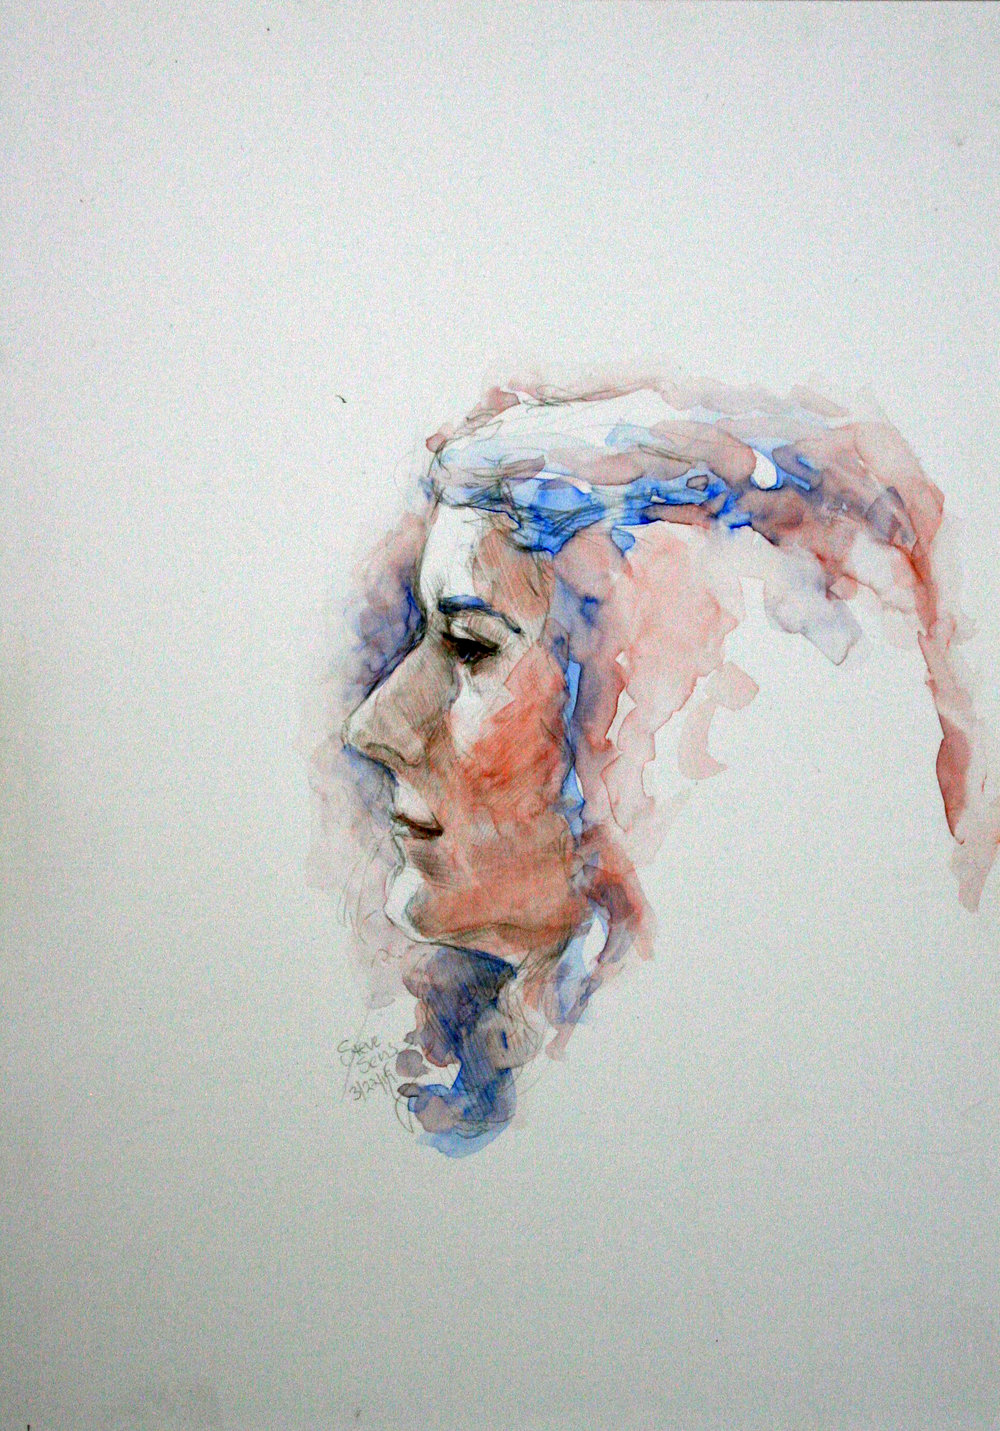 Steve Sens did this watercolor/silverpoint drawing.